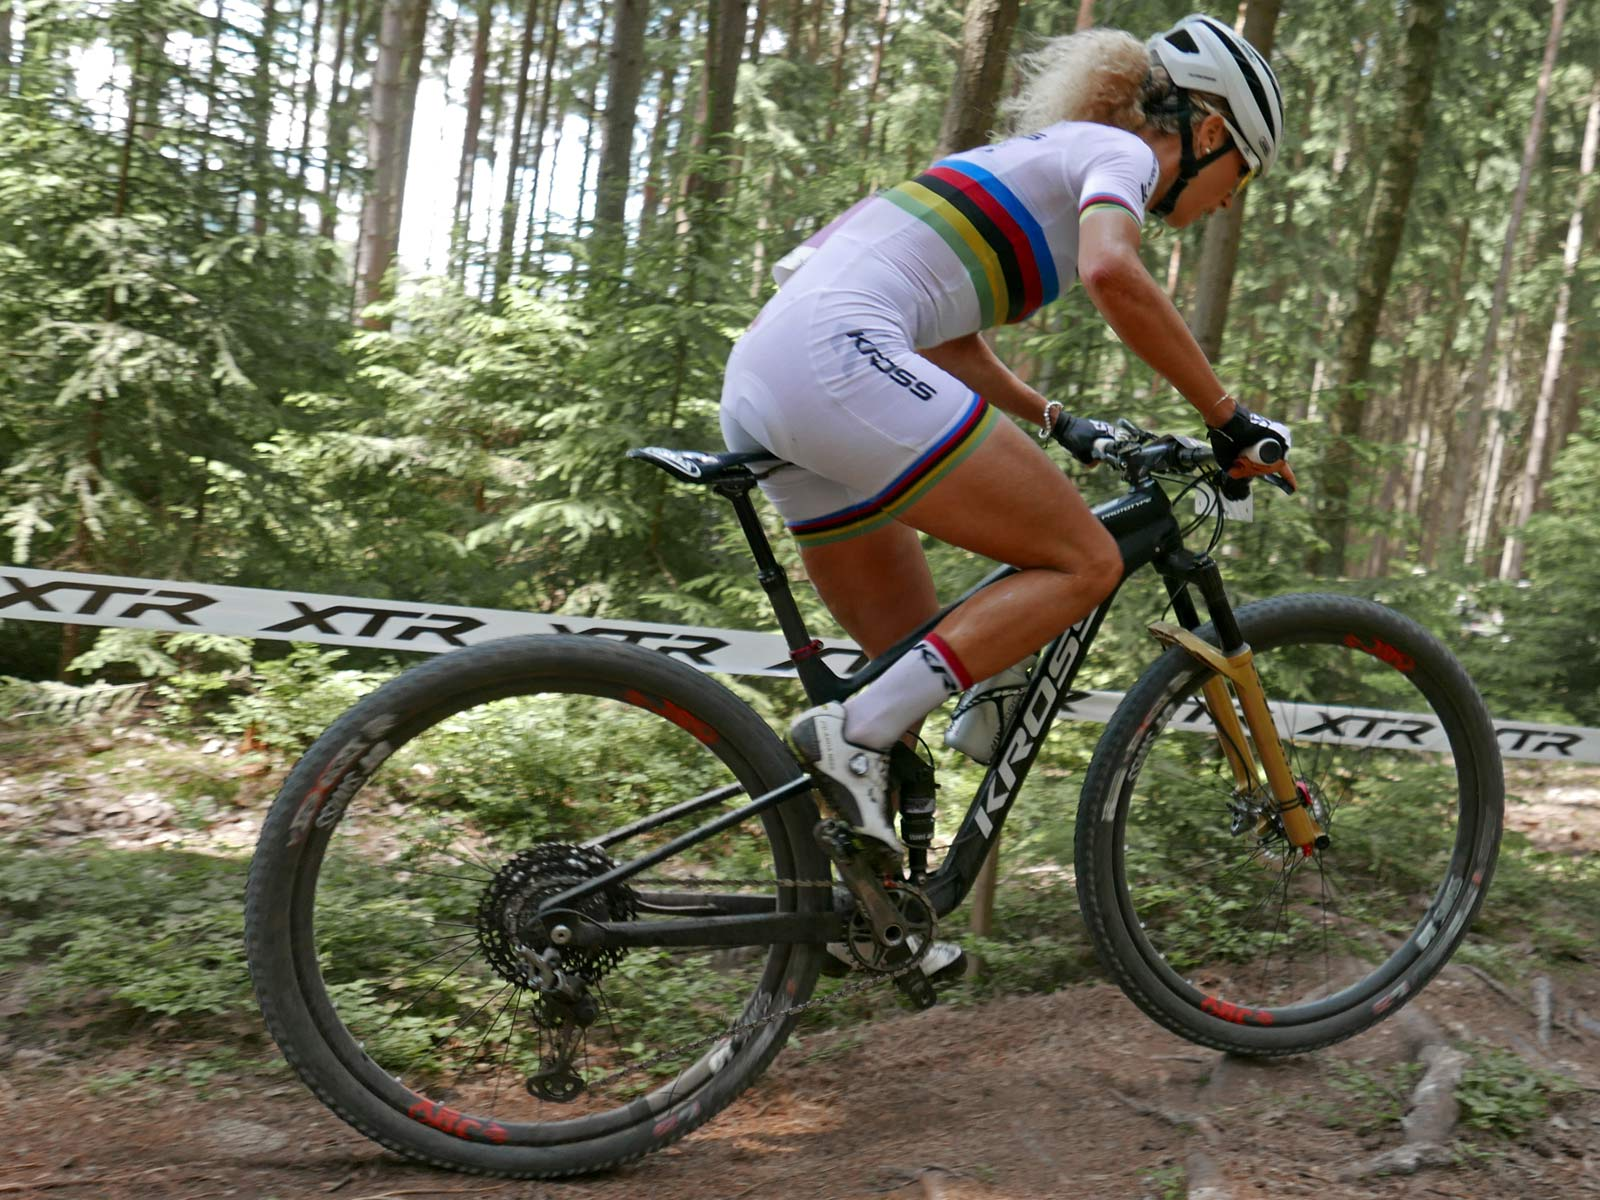 Prototype Kross Earth 100mm made in EU carbon full suspension 29er XC race mountain bike Jolanda Neff Nove Mesto rear